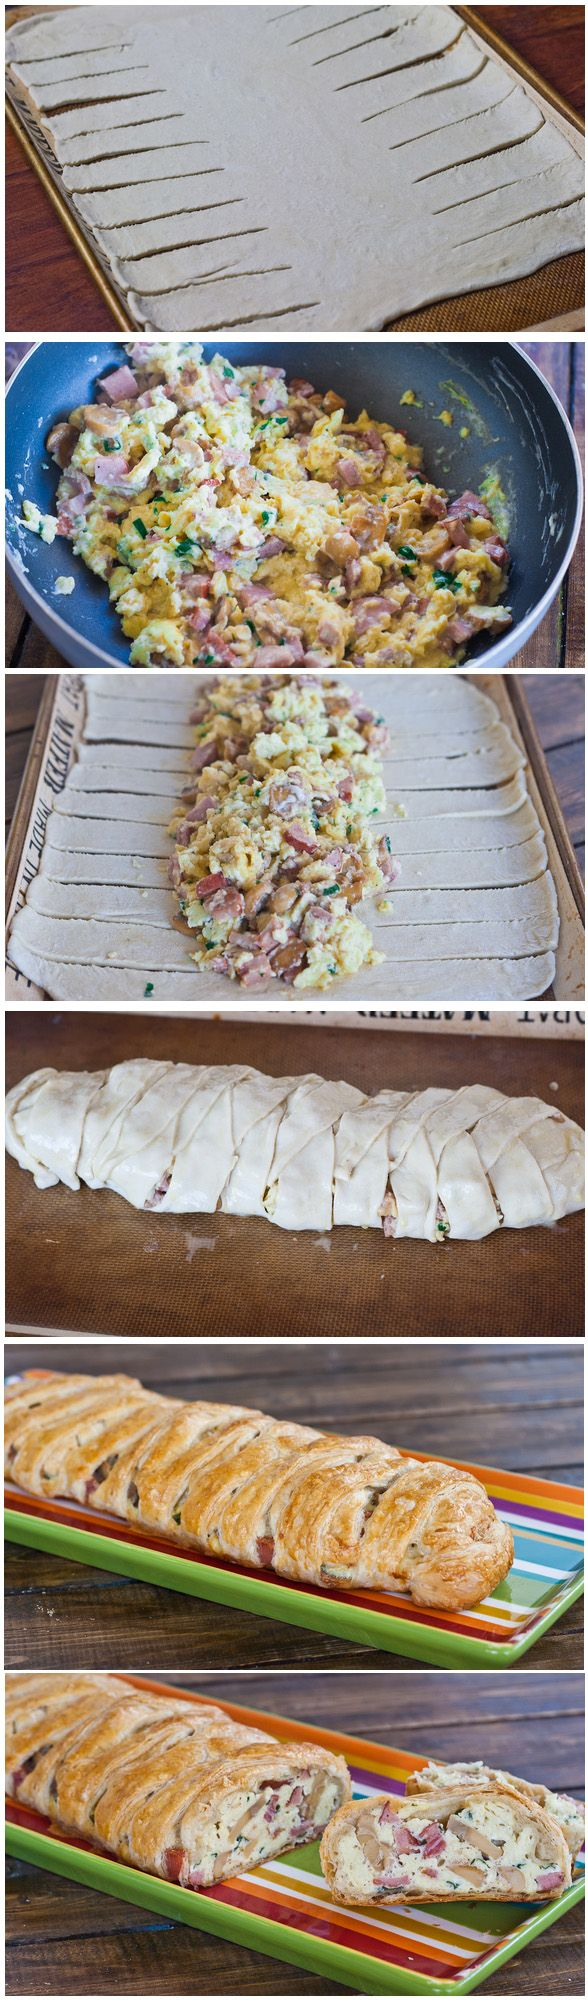 An entire breakfast or brunch wrapped in puff pastry.